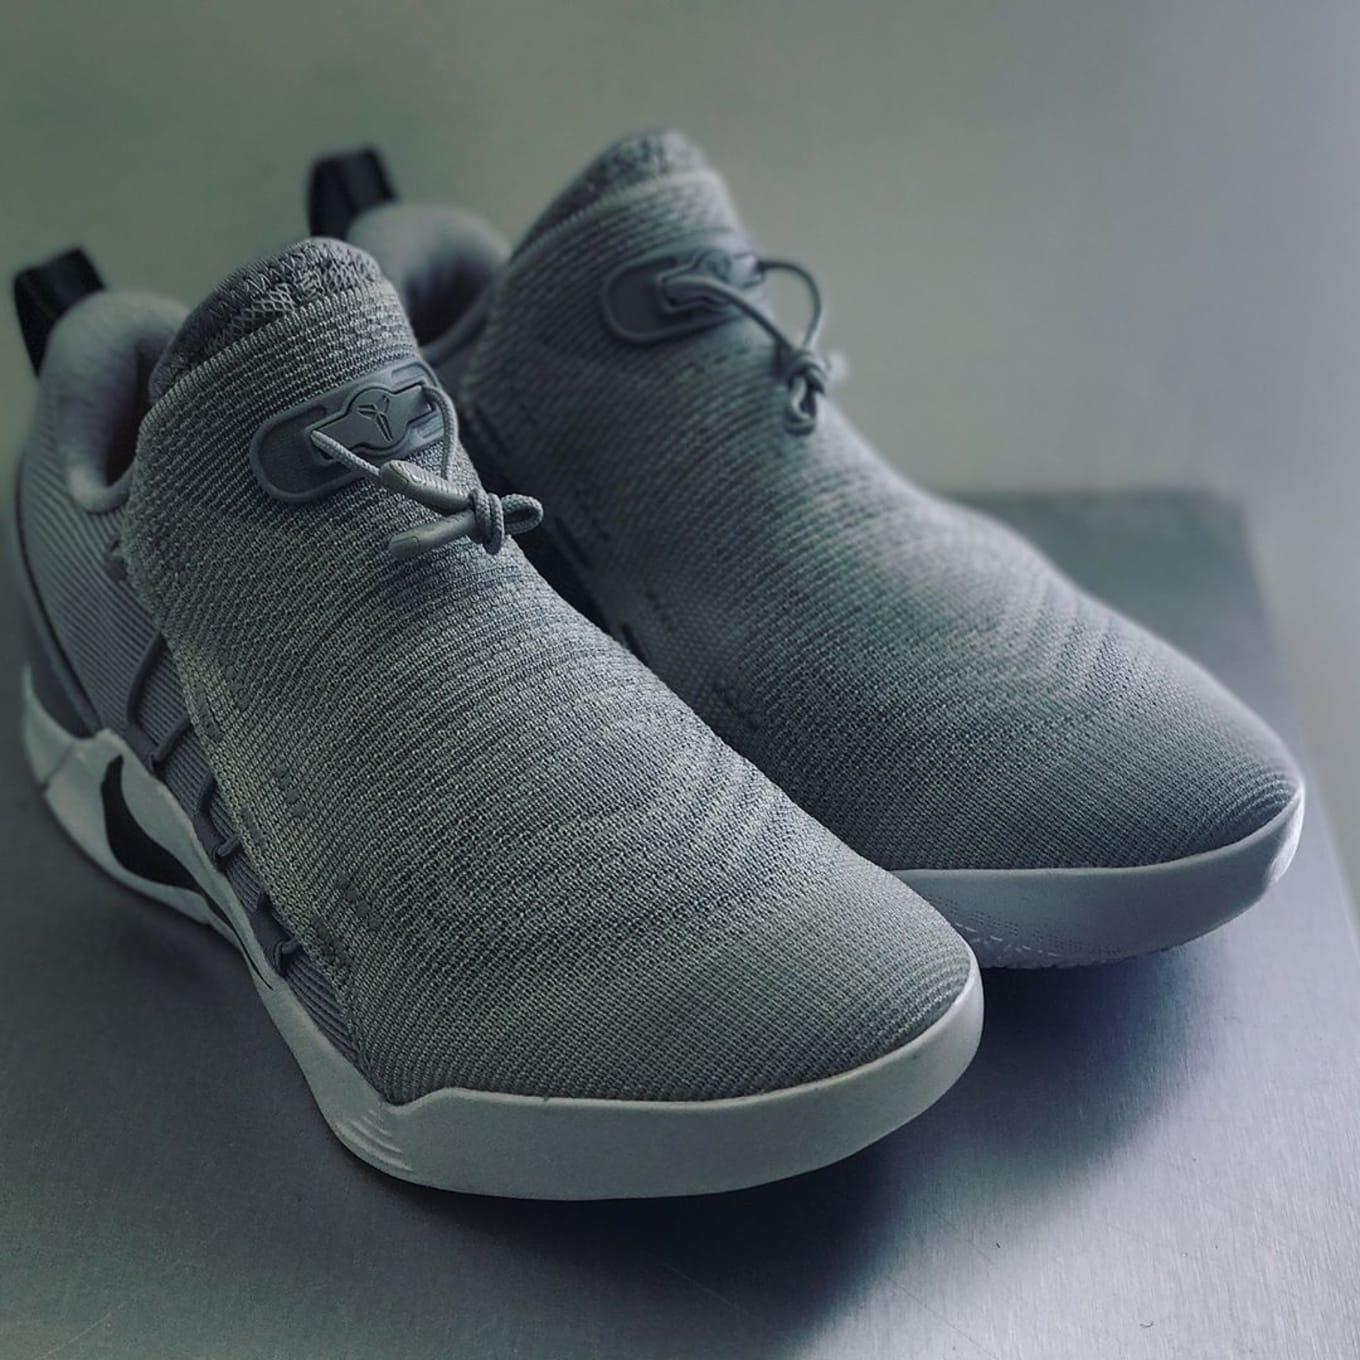 3db1e8802228 First look at the Kobe A.D. NXT in two colorways.